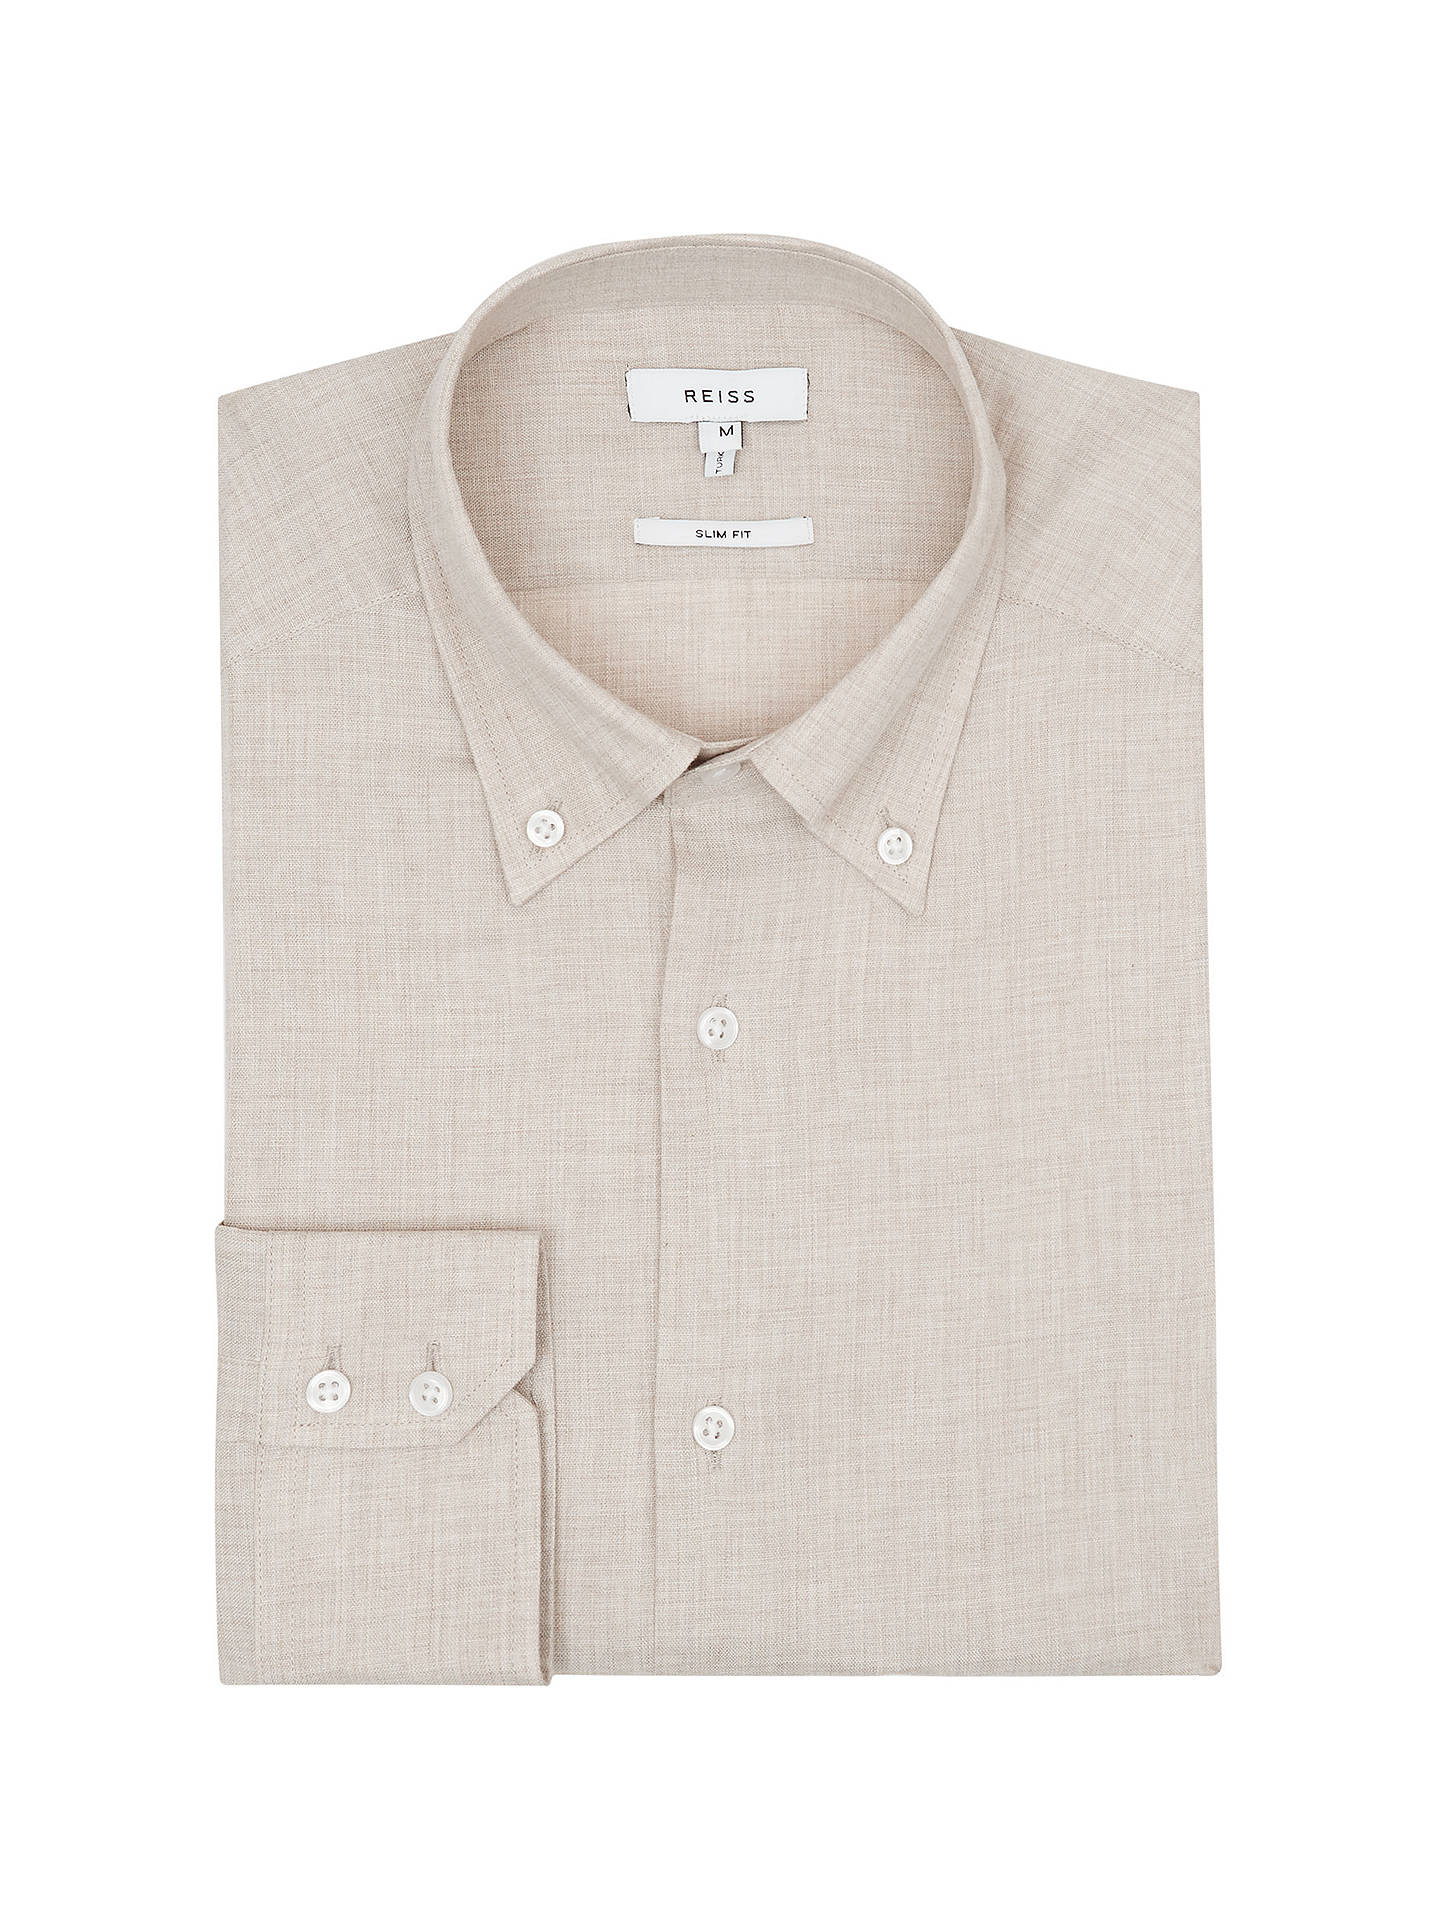 Buy Reiss Rapter Slim Fit Cotton Shirt, Camel, S Online at johnlewis.com